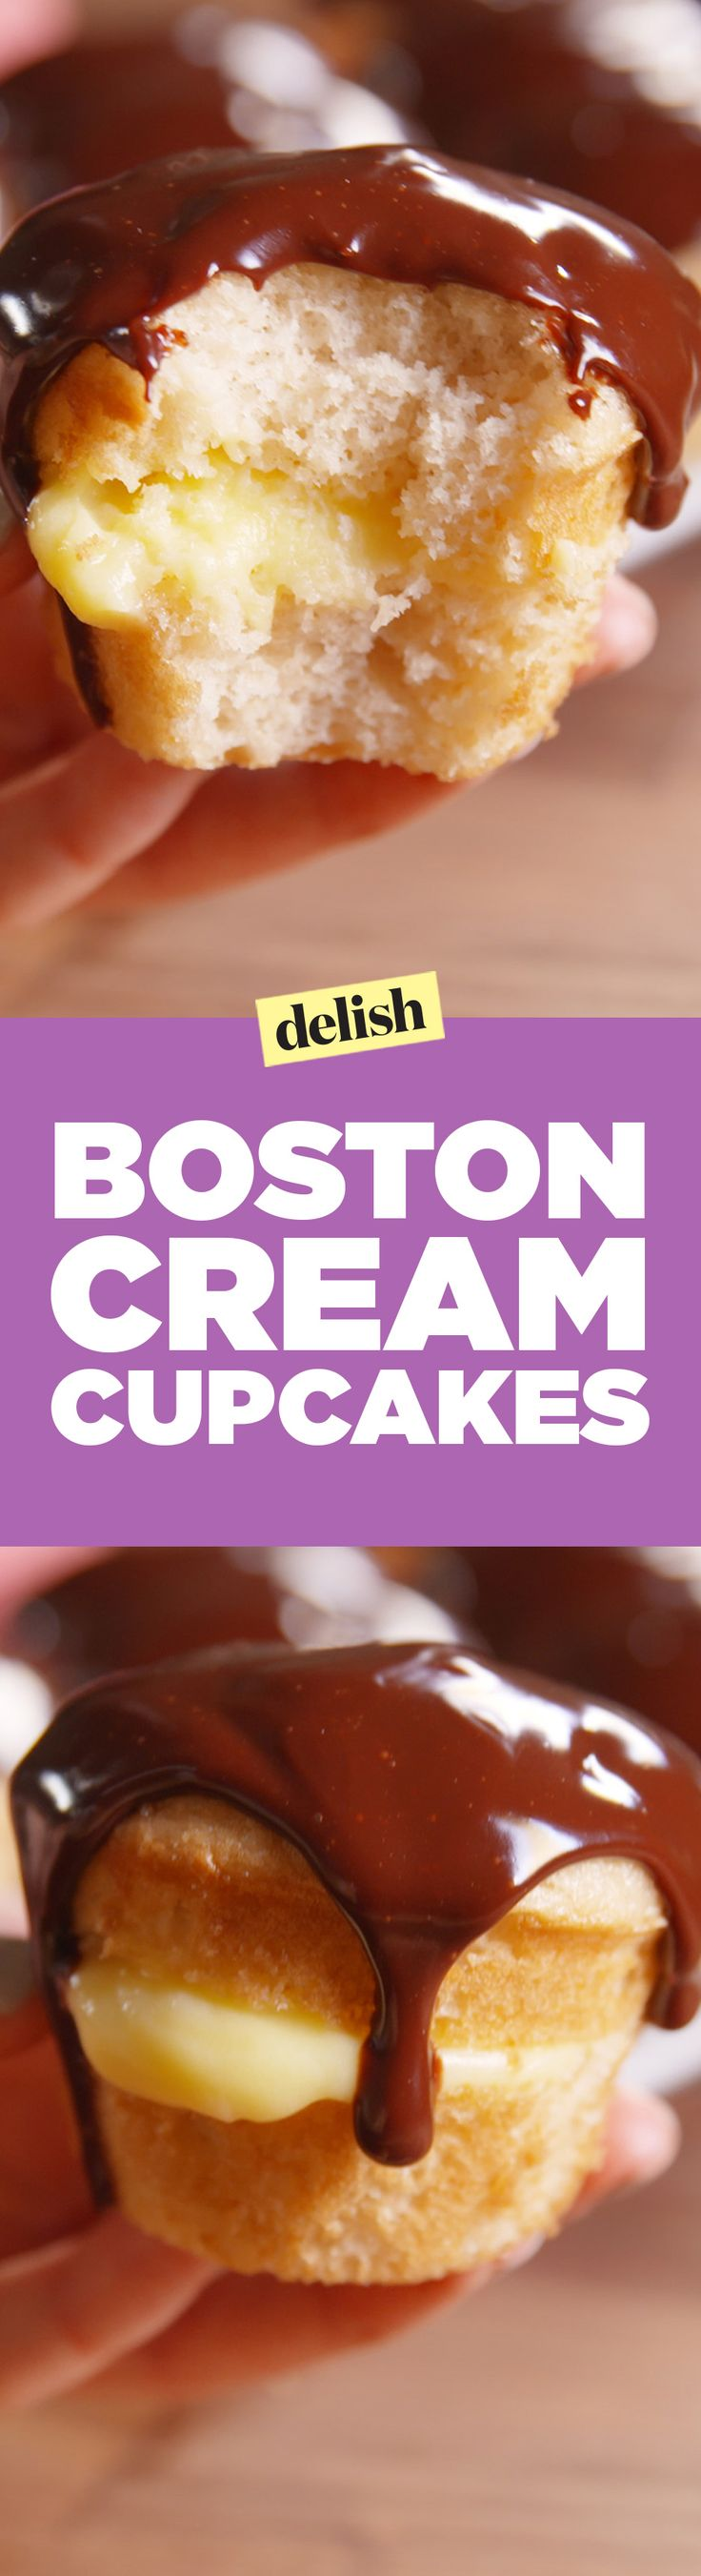 Boston cream cupcakes are the best way to hack a regular vanilla cupcake. Get the recipe on Delish.com.